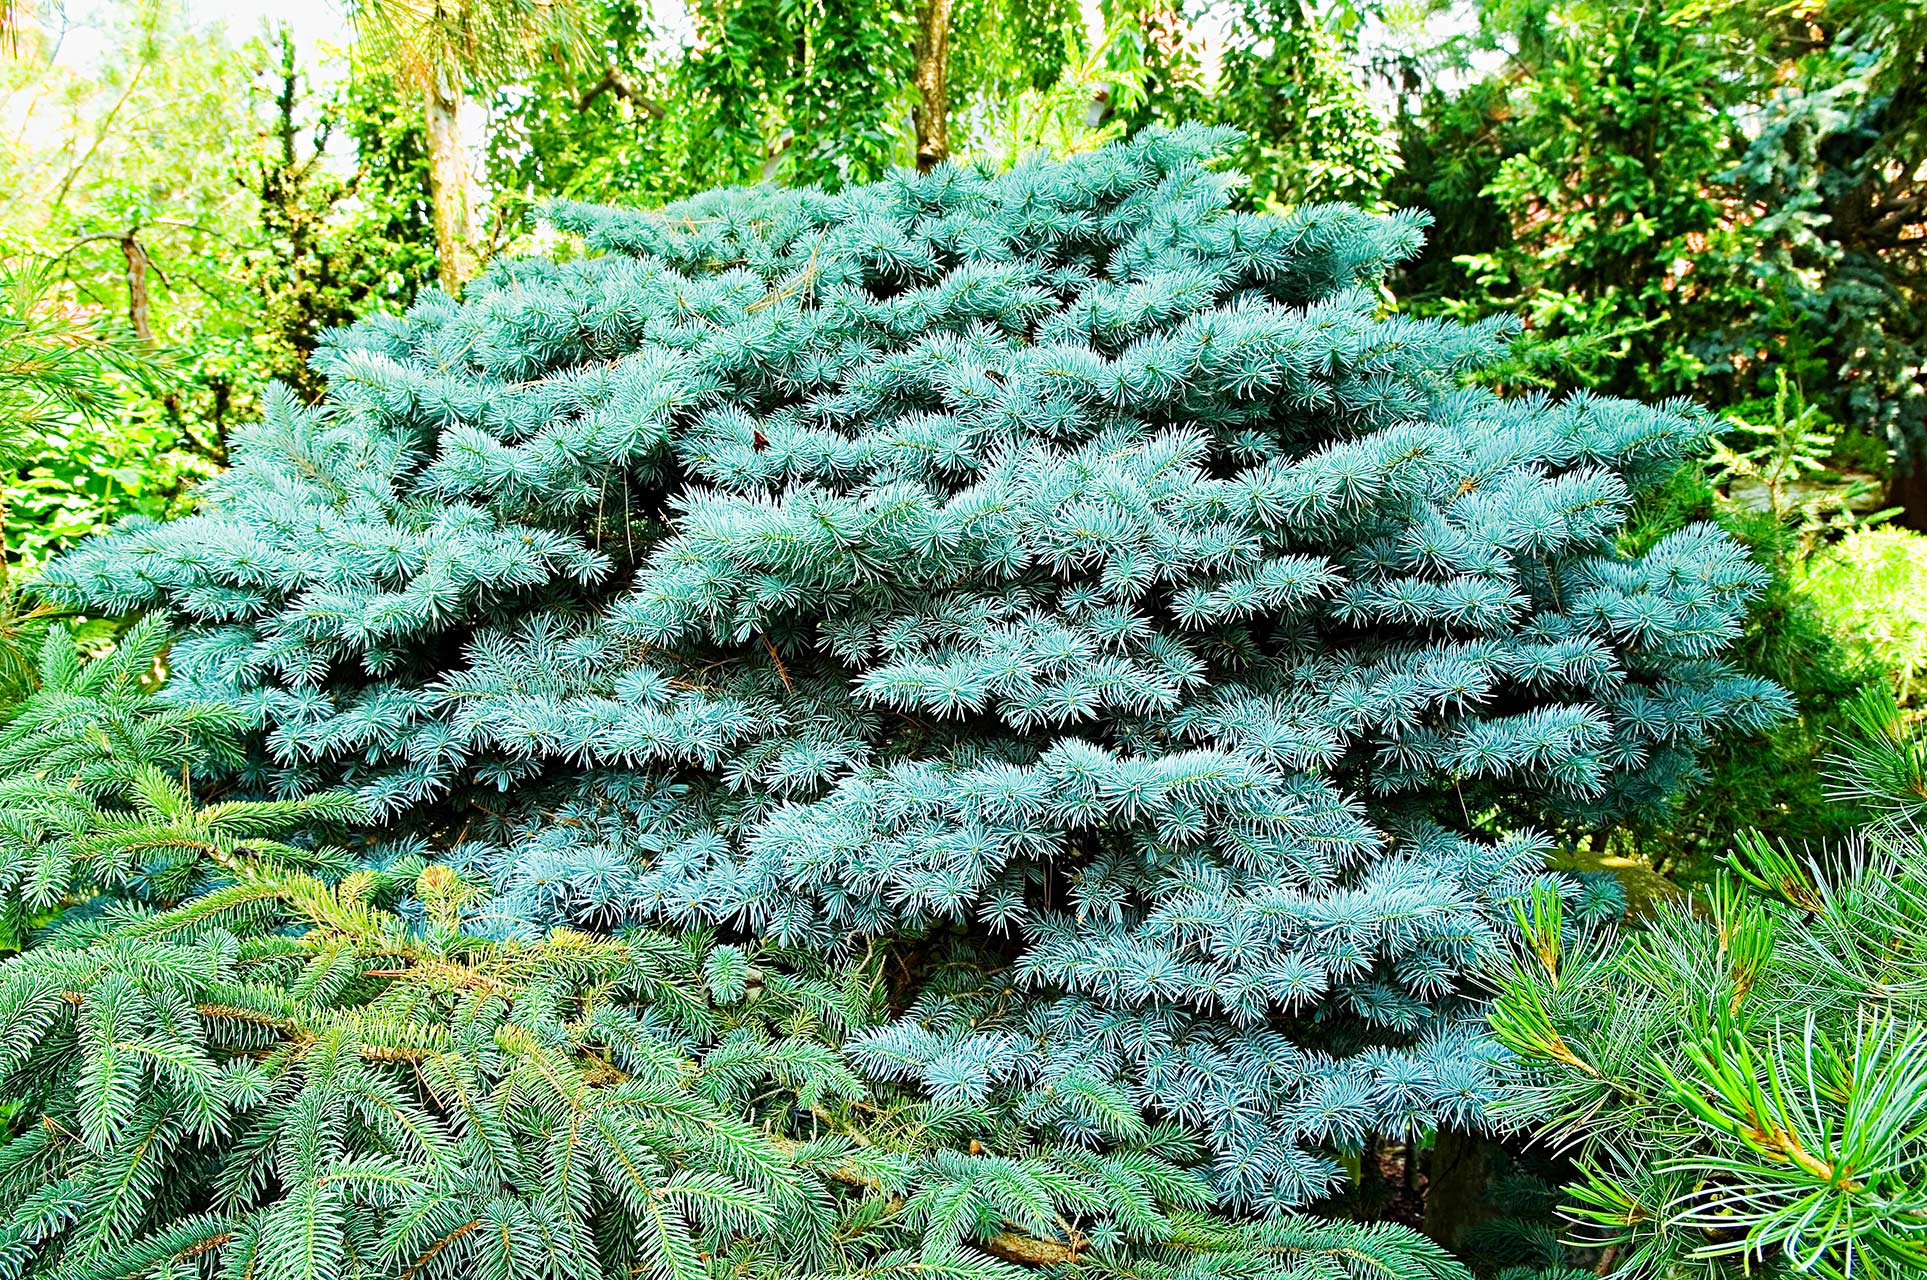 silver-leafed evergreen bush